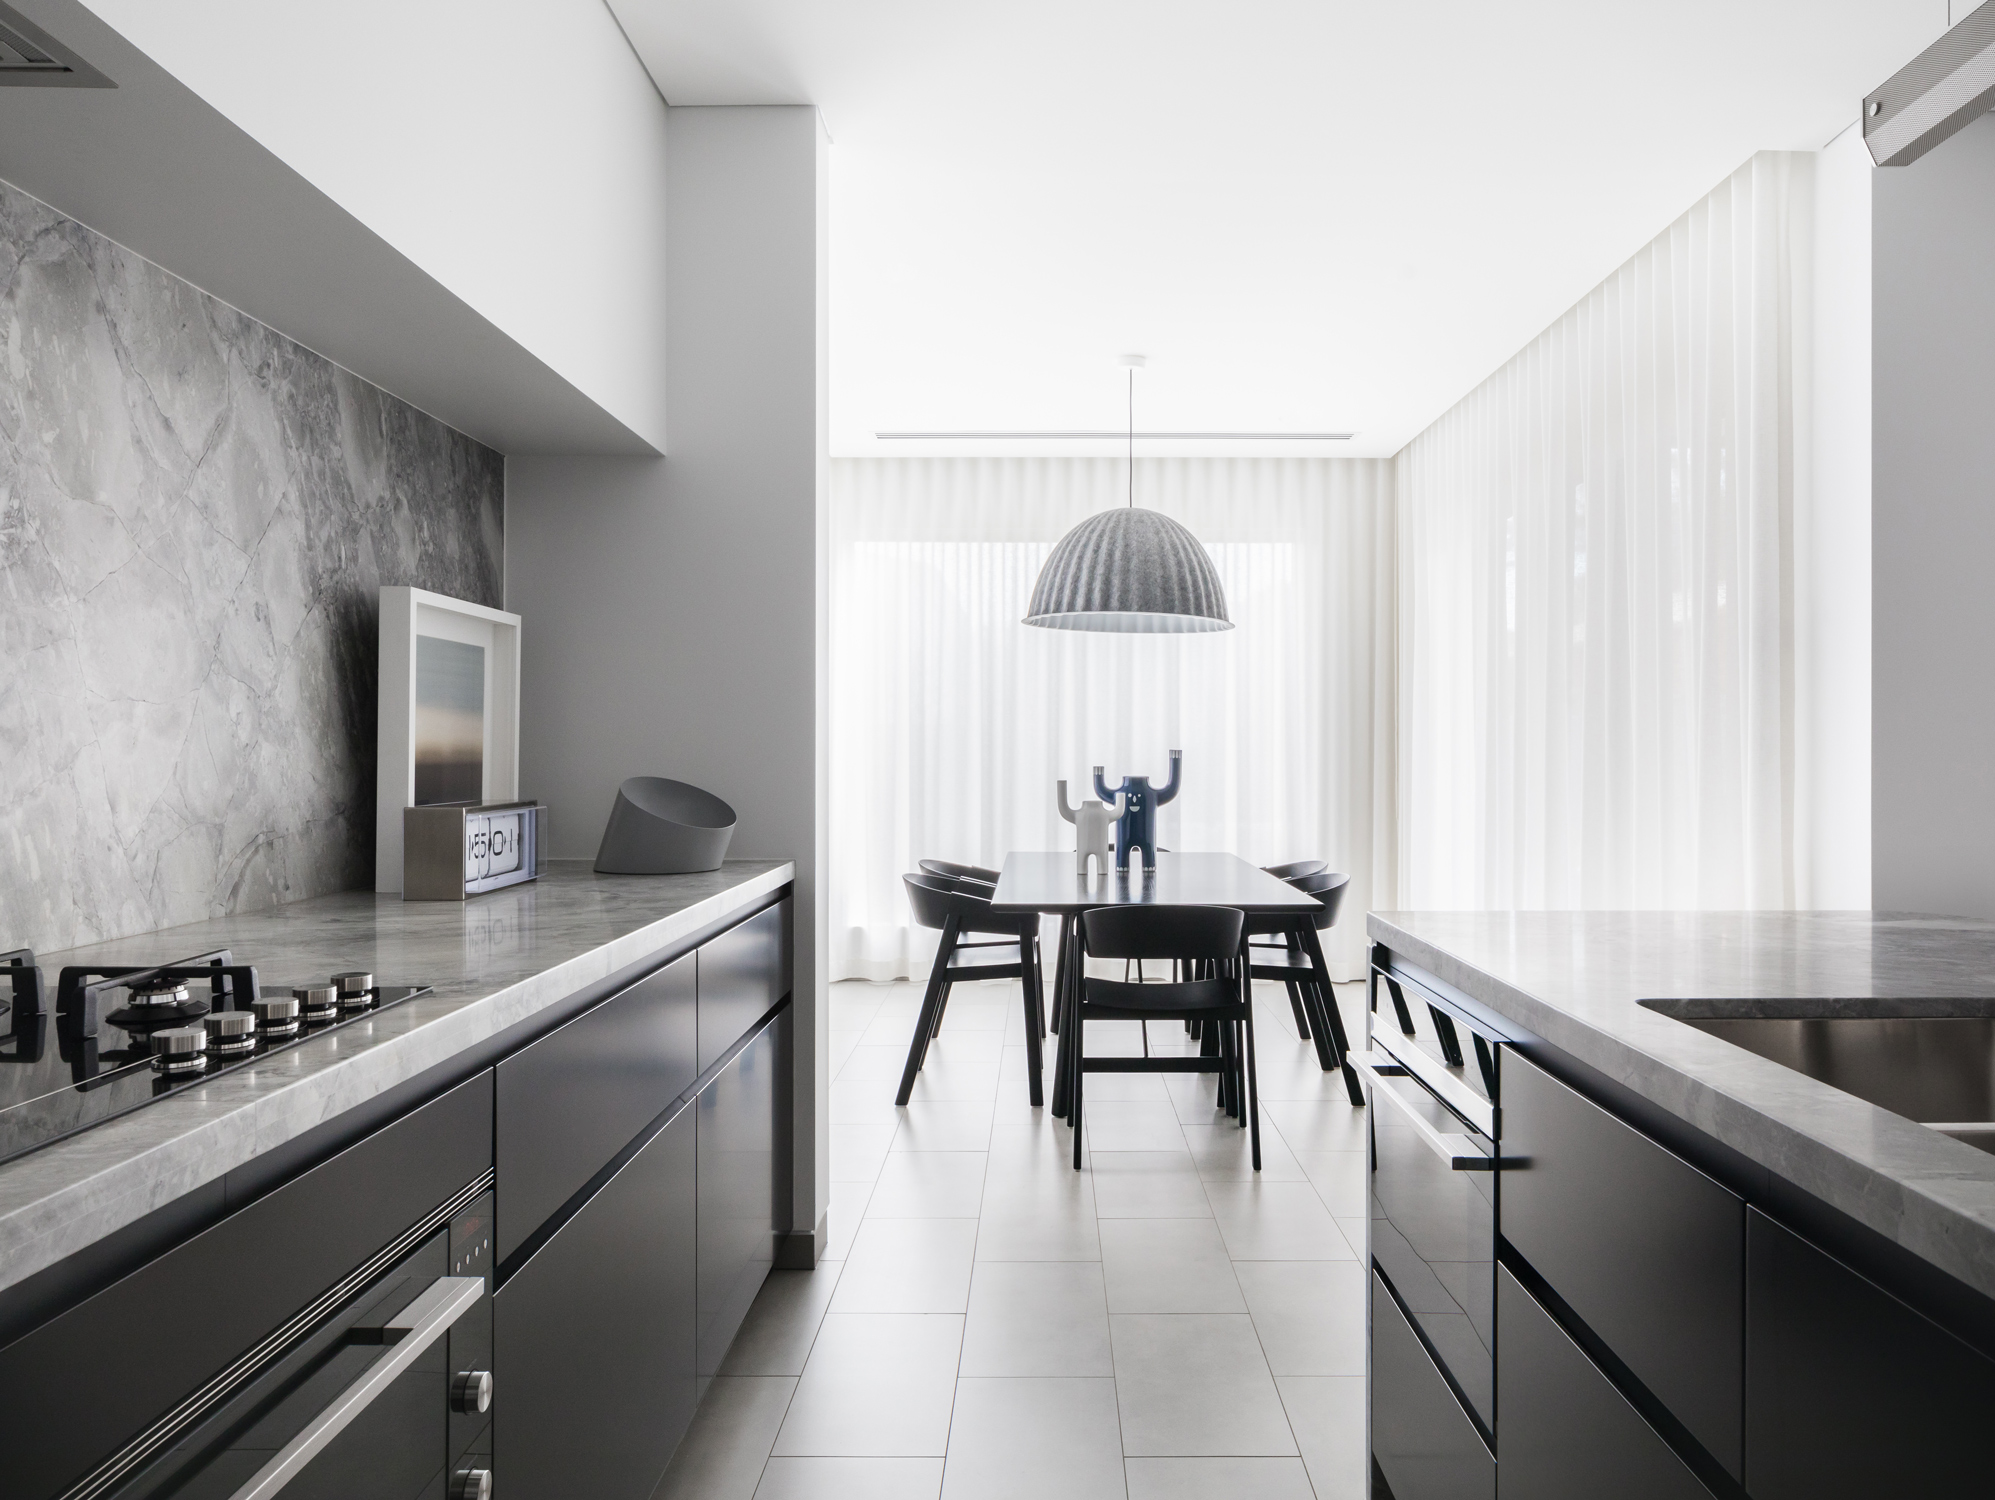 Broad Residence By Baldwin & Bagnall Local Commercial Design And Interior Architecture Sydney,nsw Image 7